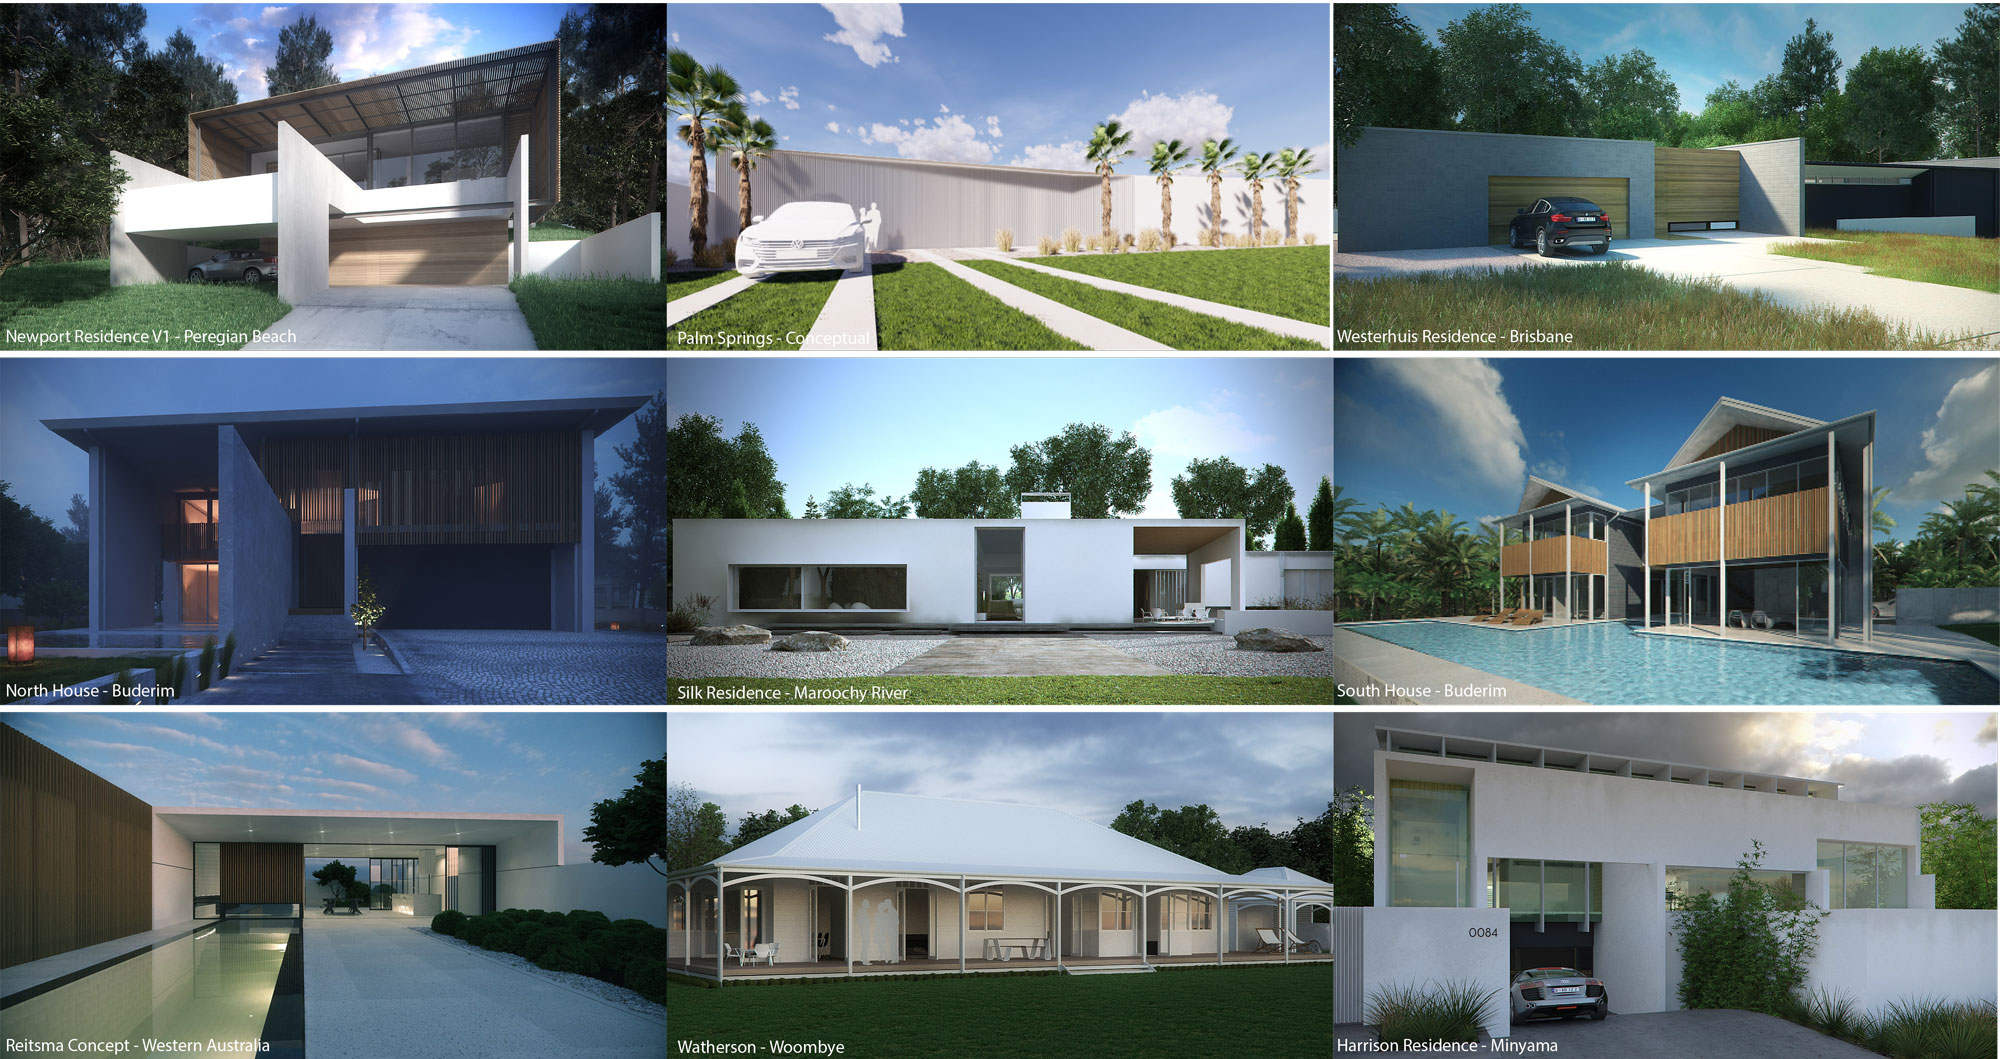 Reitsma-Range-of-Projects_P1